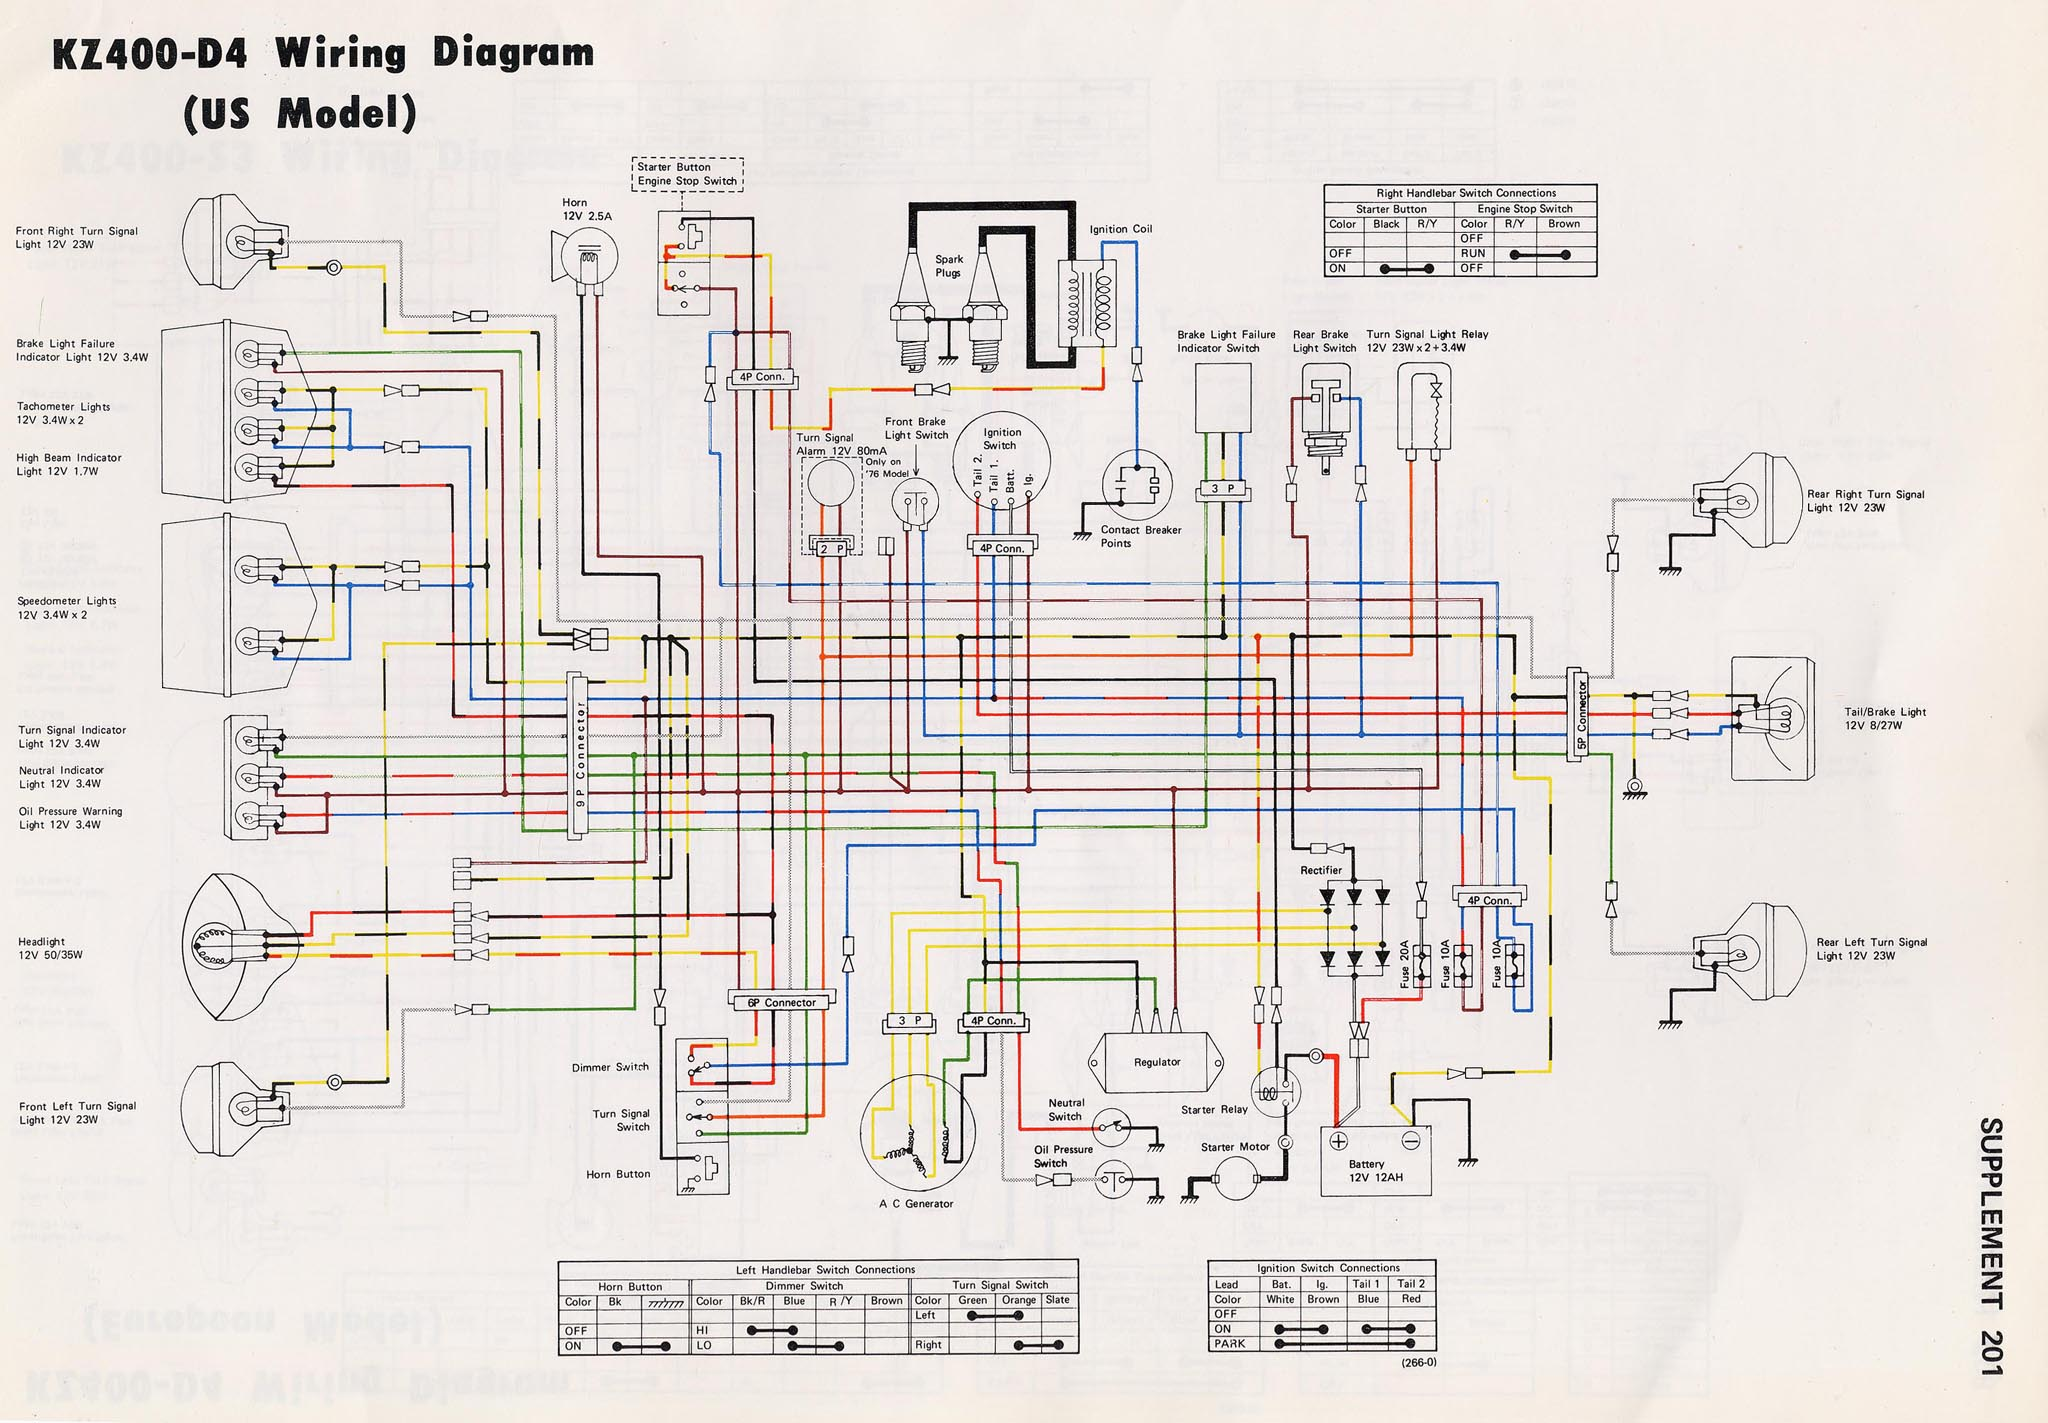 For A Kawasaki 440 Ltd Wiring Diagram - Enthusiast Wiring Diagrams A Wiring Diagram Kawasaki on